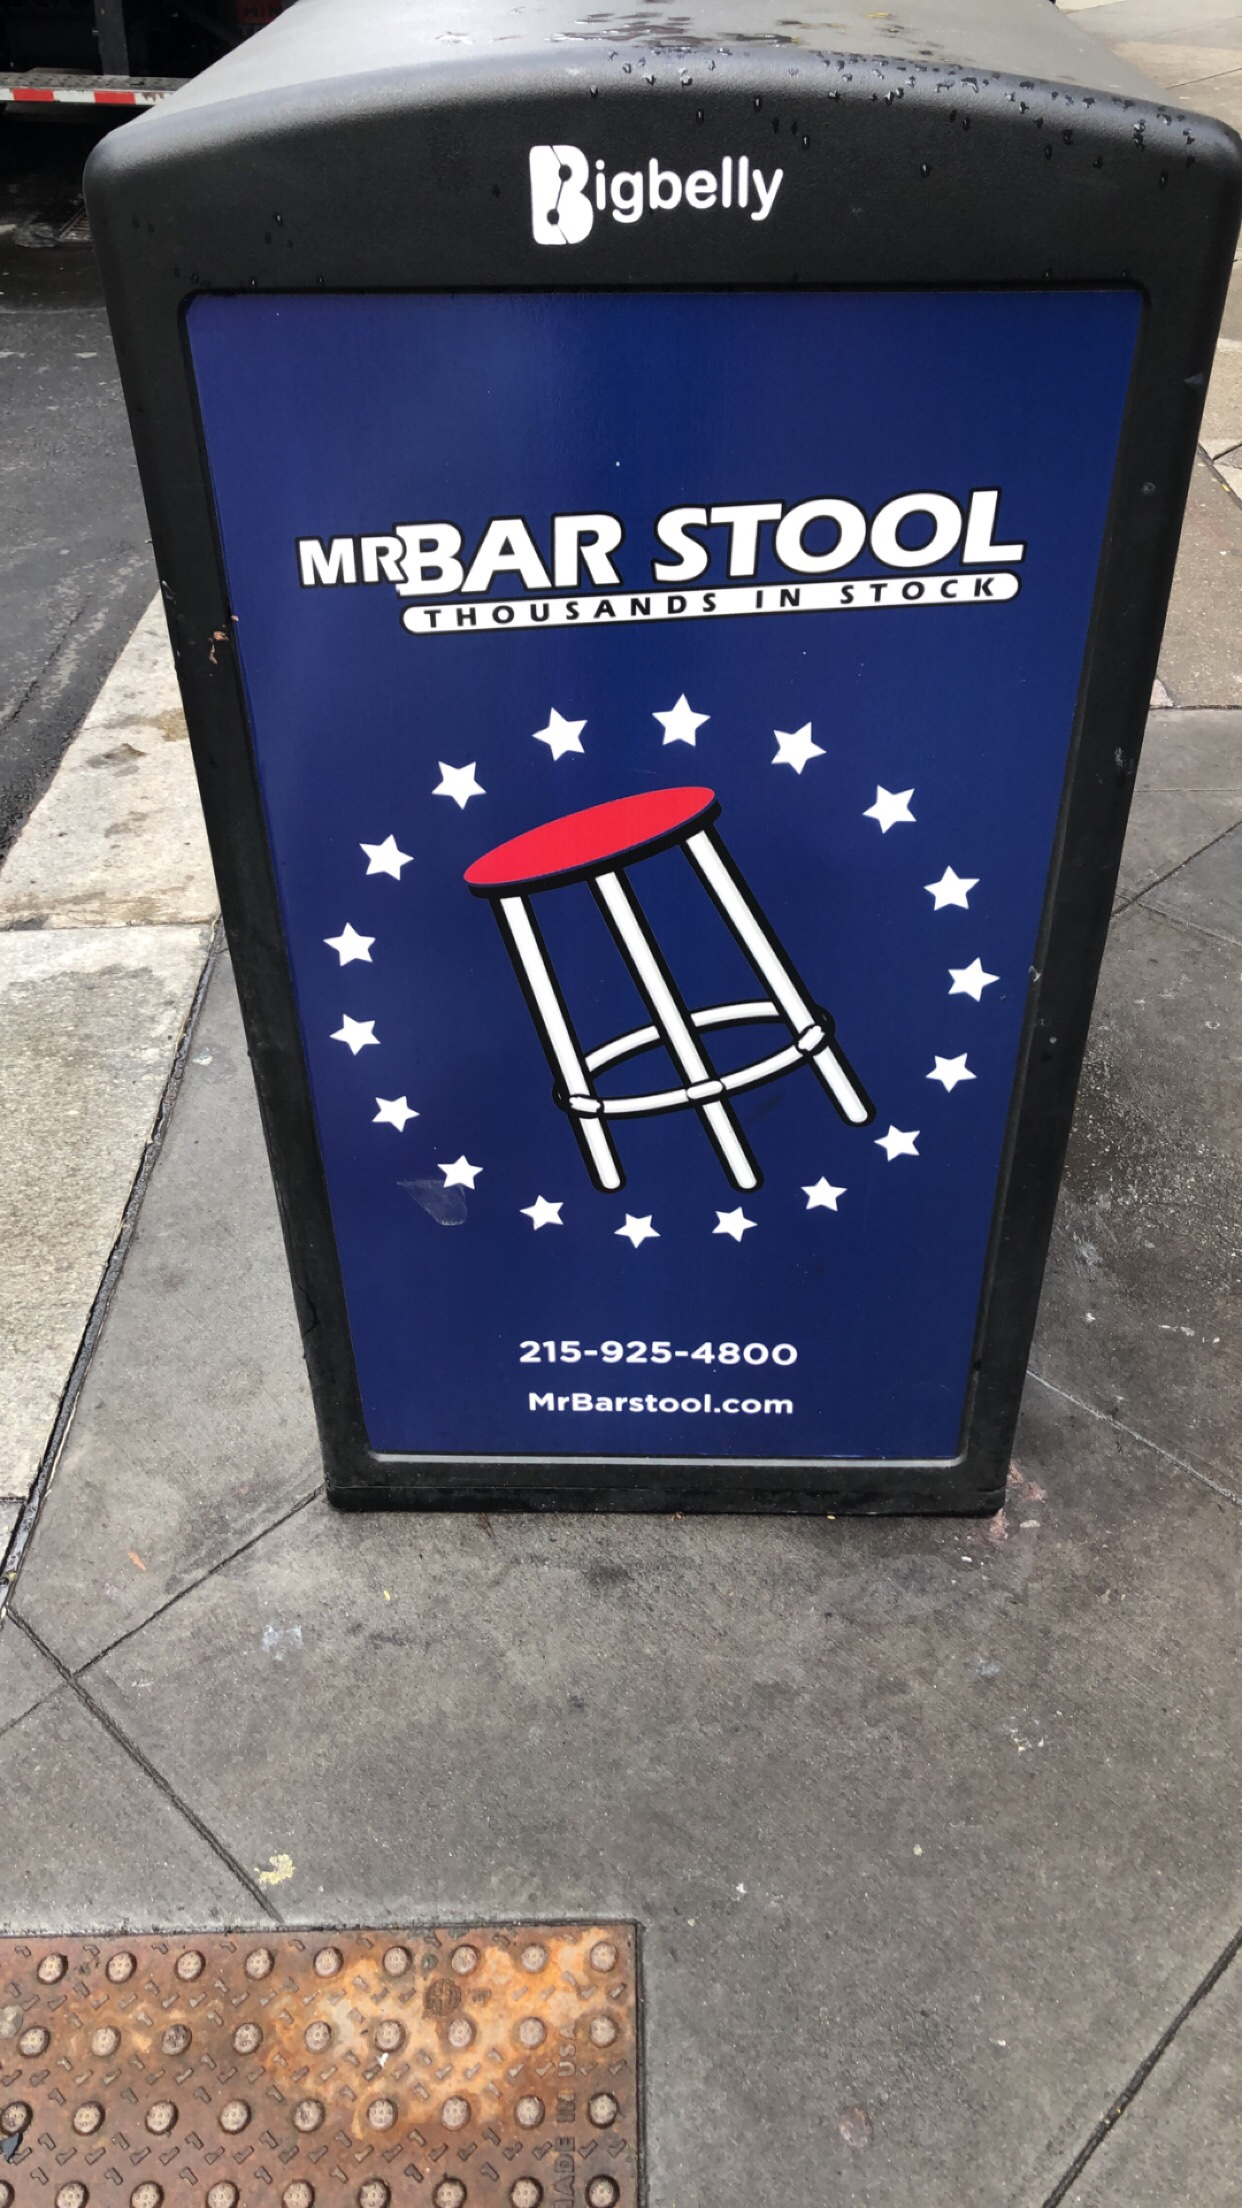 Did Barstool Steal Mr. Bar Stool's Logo?